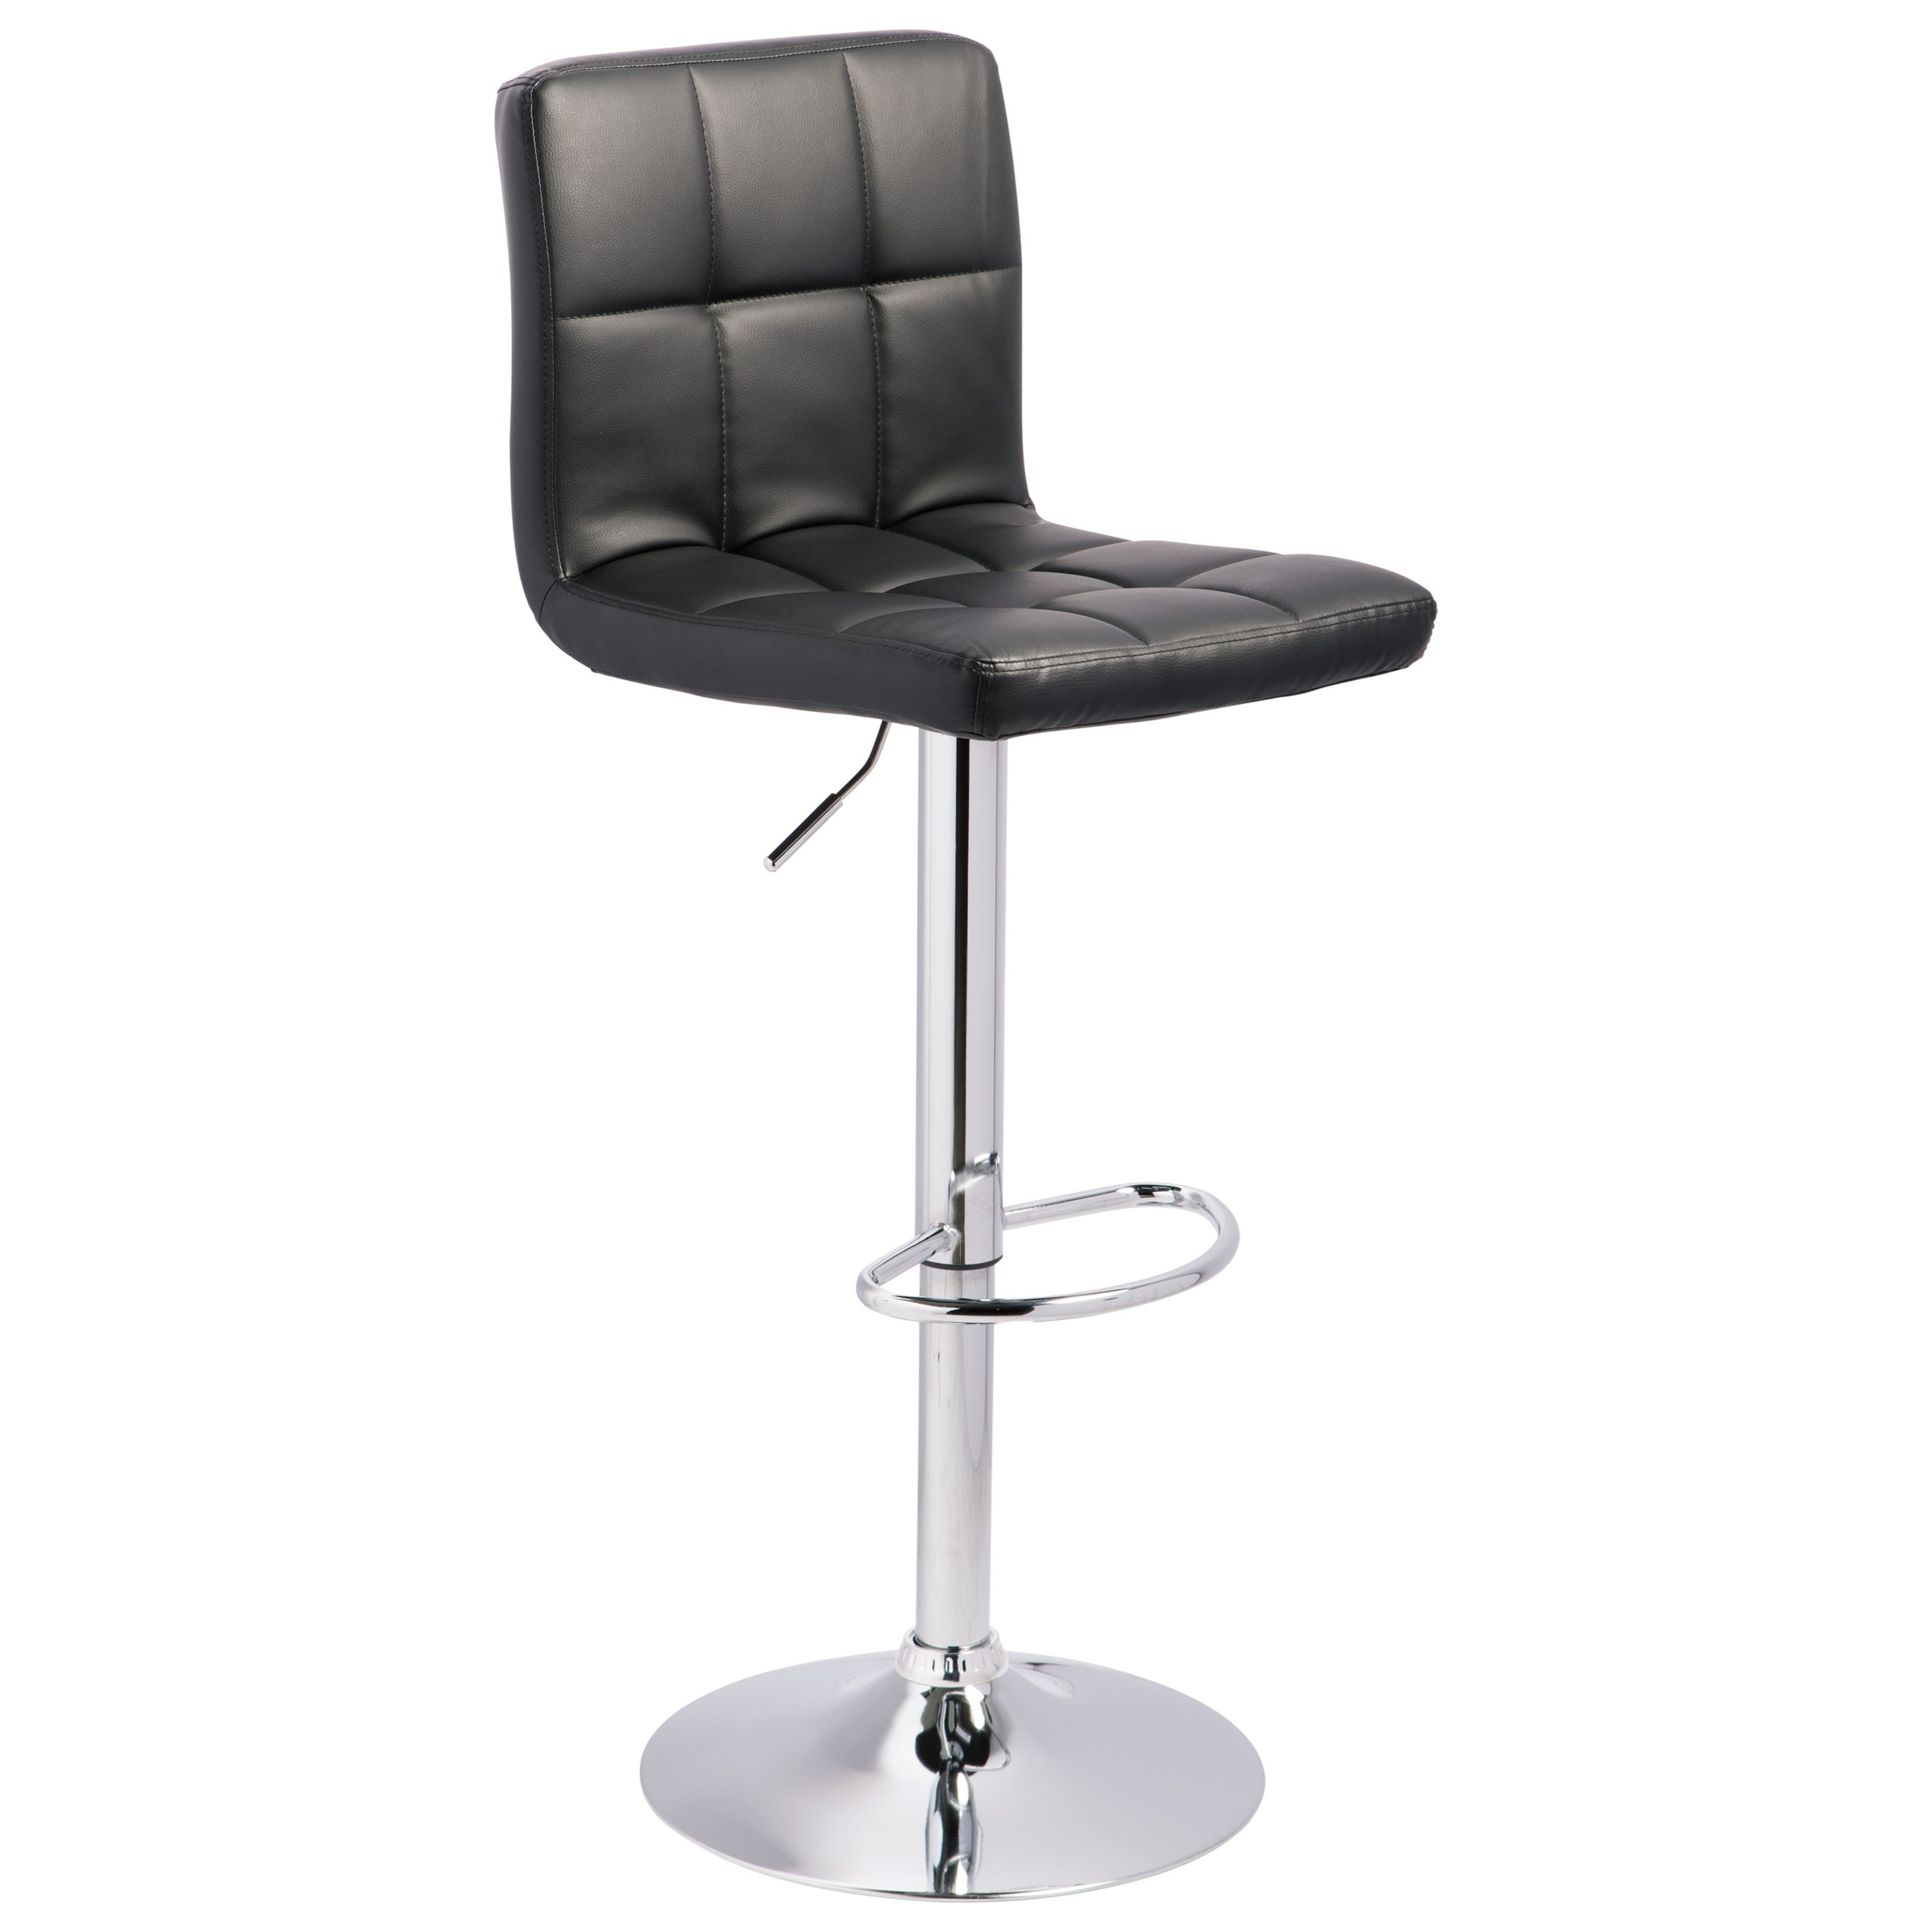 Signature Design by Ashley Adjustable Height Barstools Tall Upholstered Swivel Barstool - Item Number: D120-130